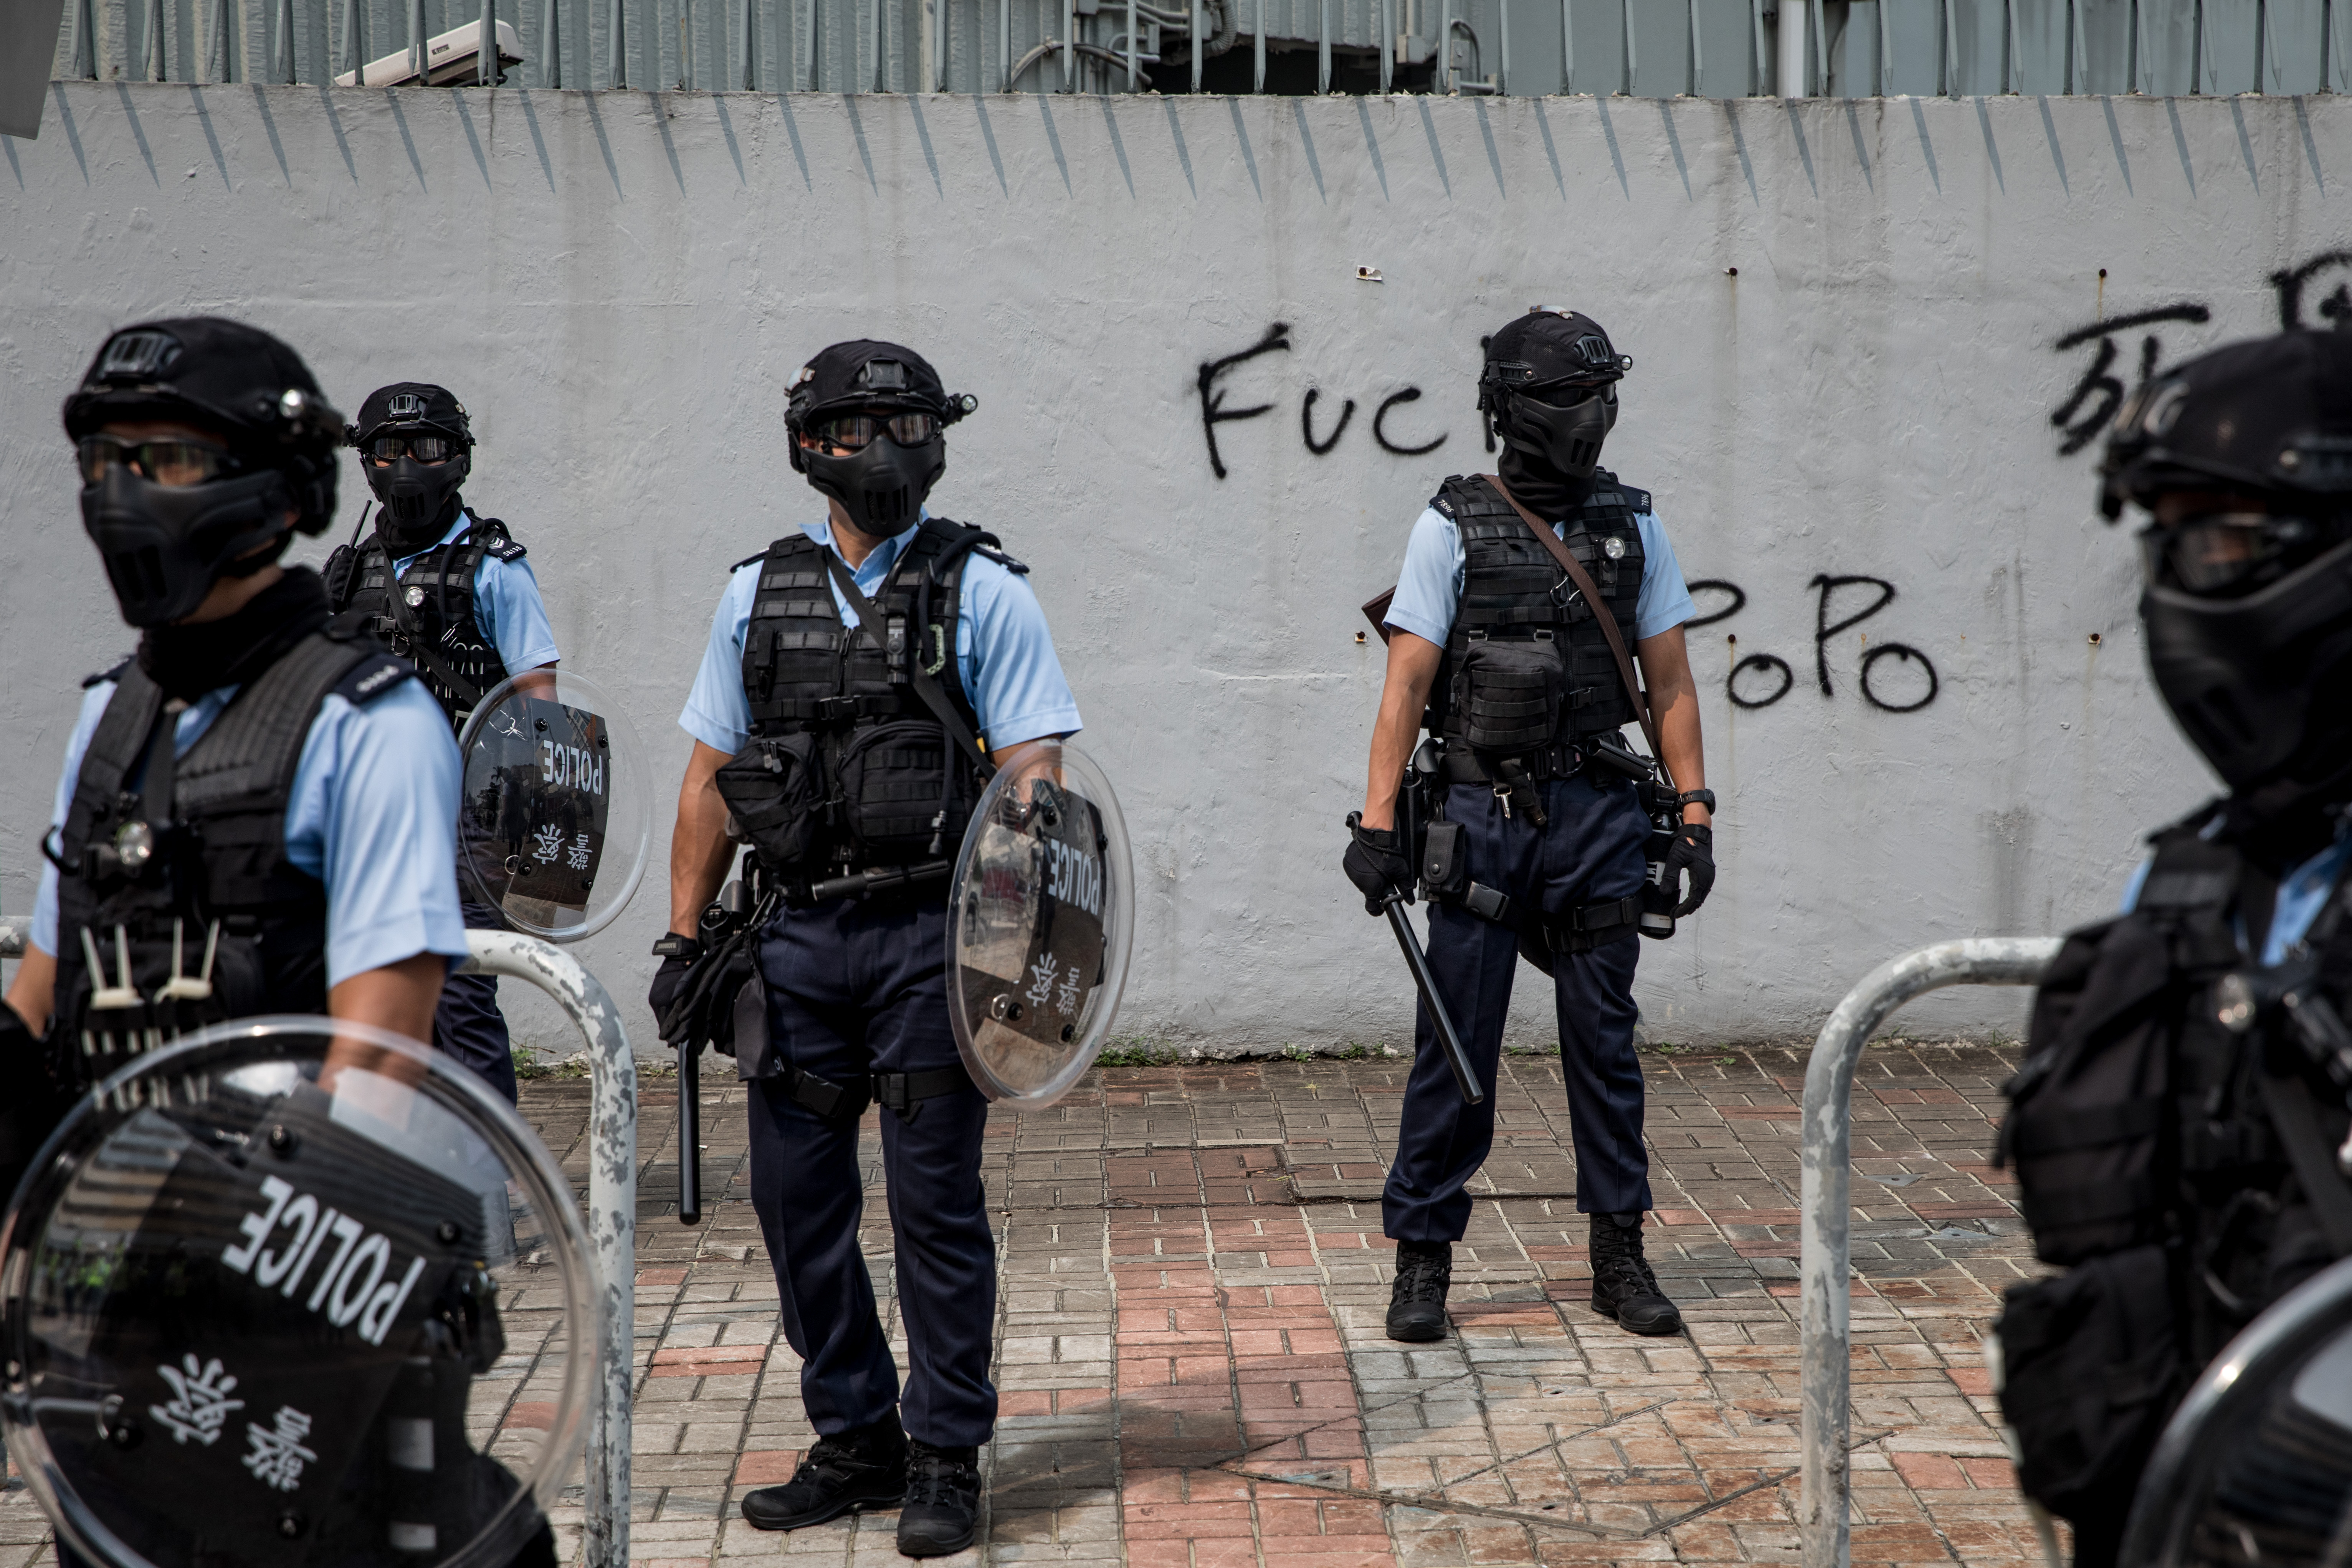 Police stand guard in front of a police station on August 24, 2019 in Hong Kong.